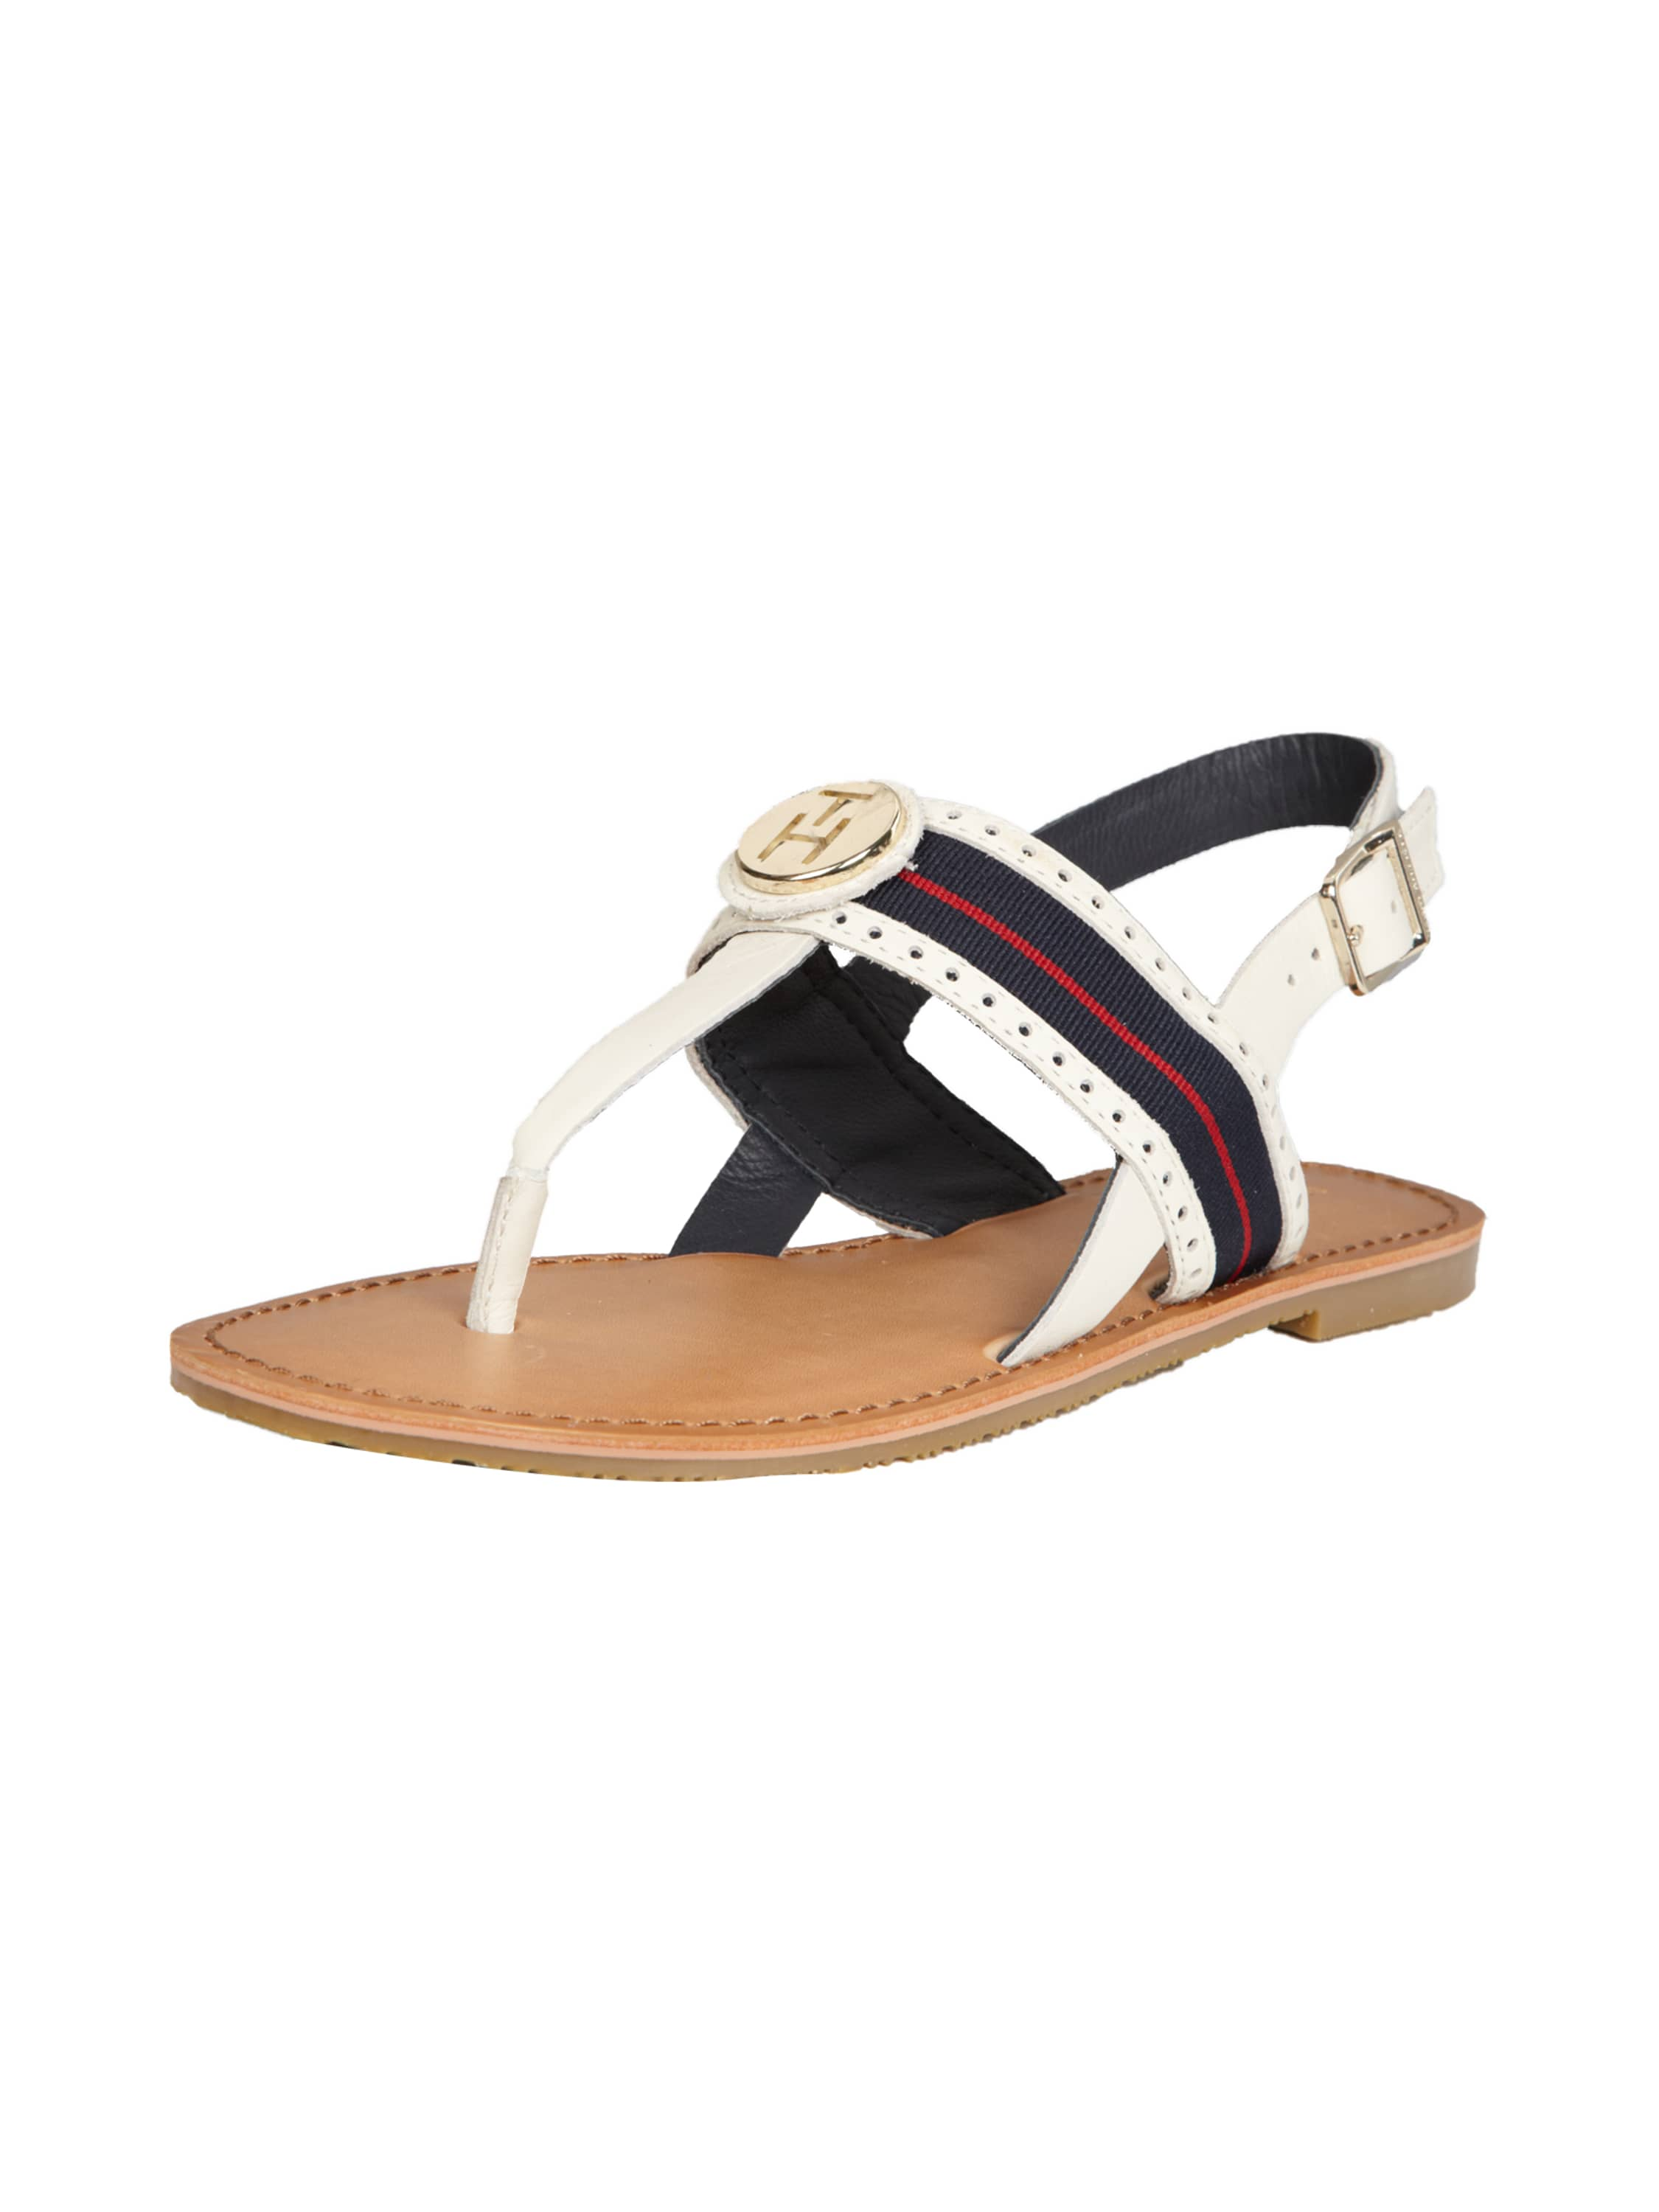 tommy hilfiger sandalen mit metall logo in wei online. Black Bedroom Furniture Sets. Home Design Ideas